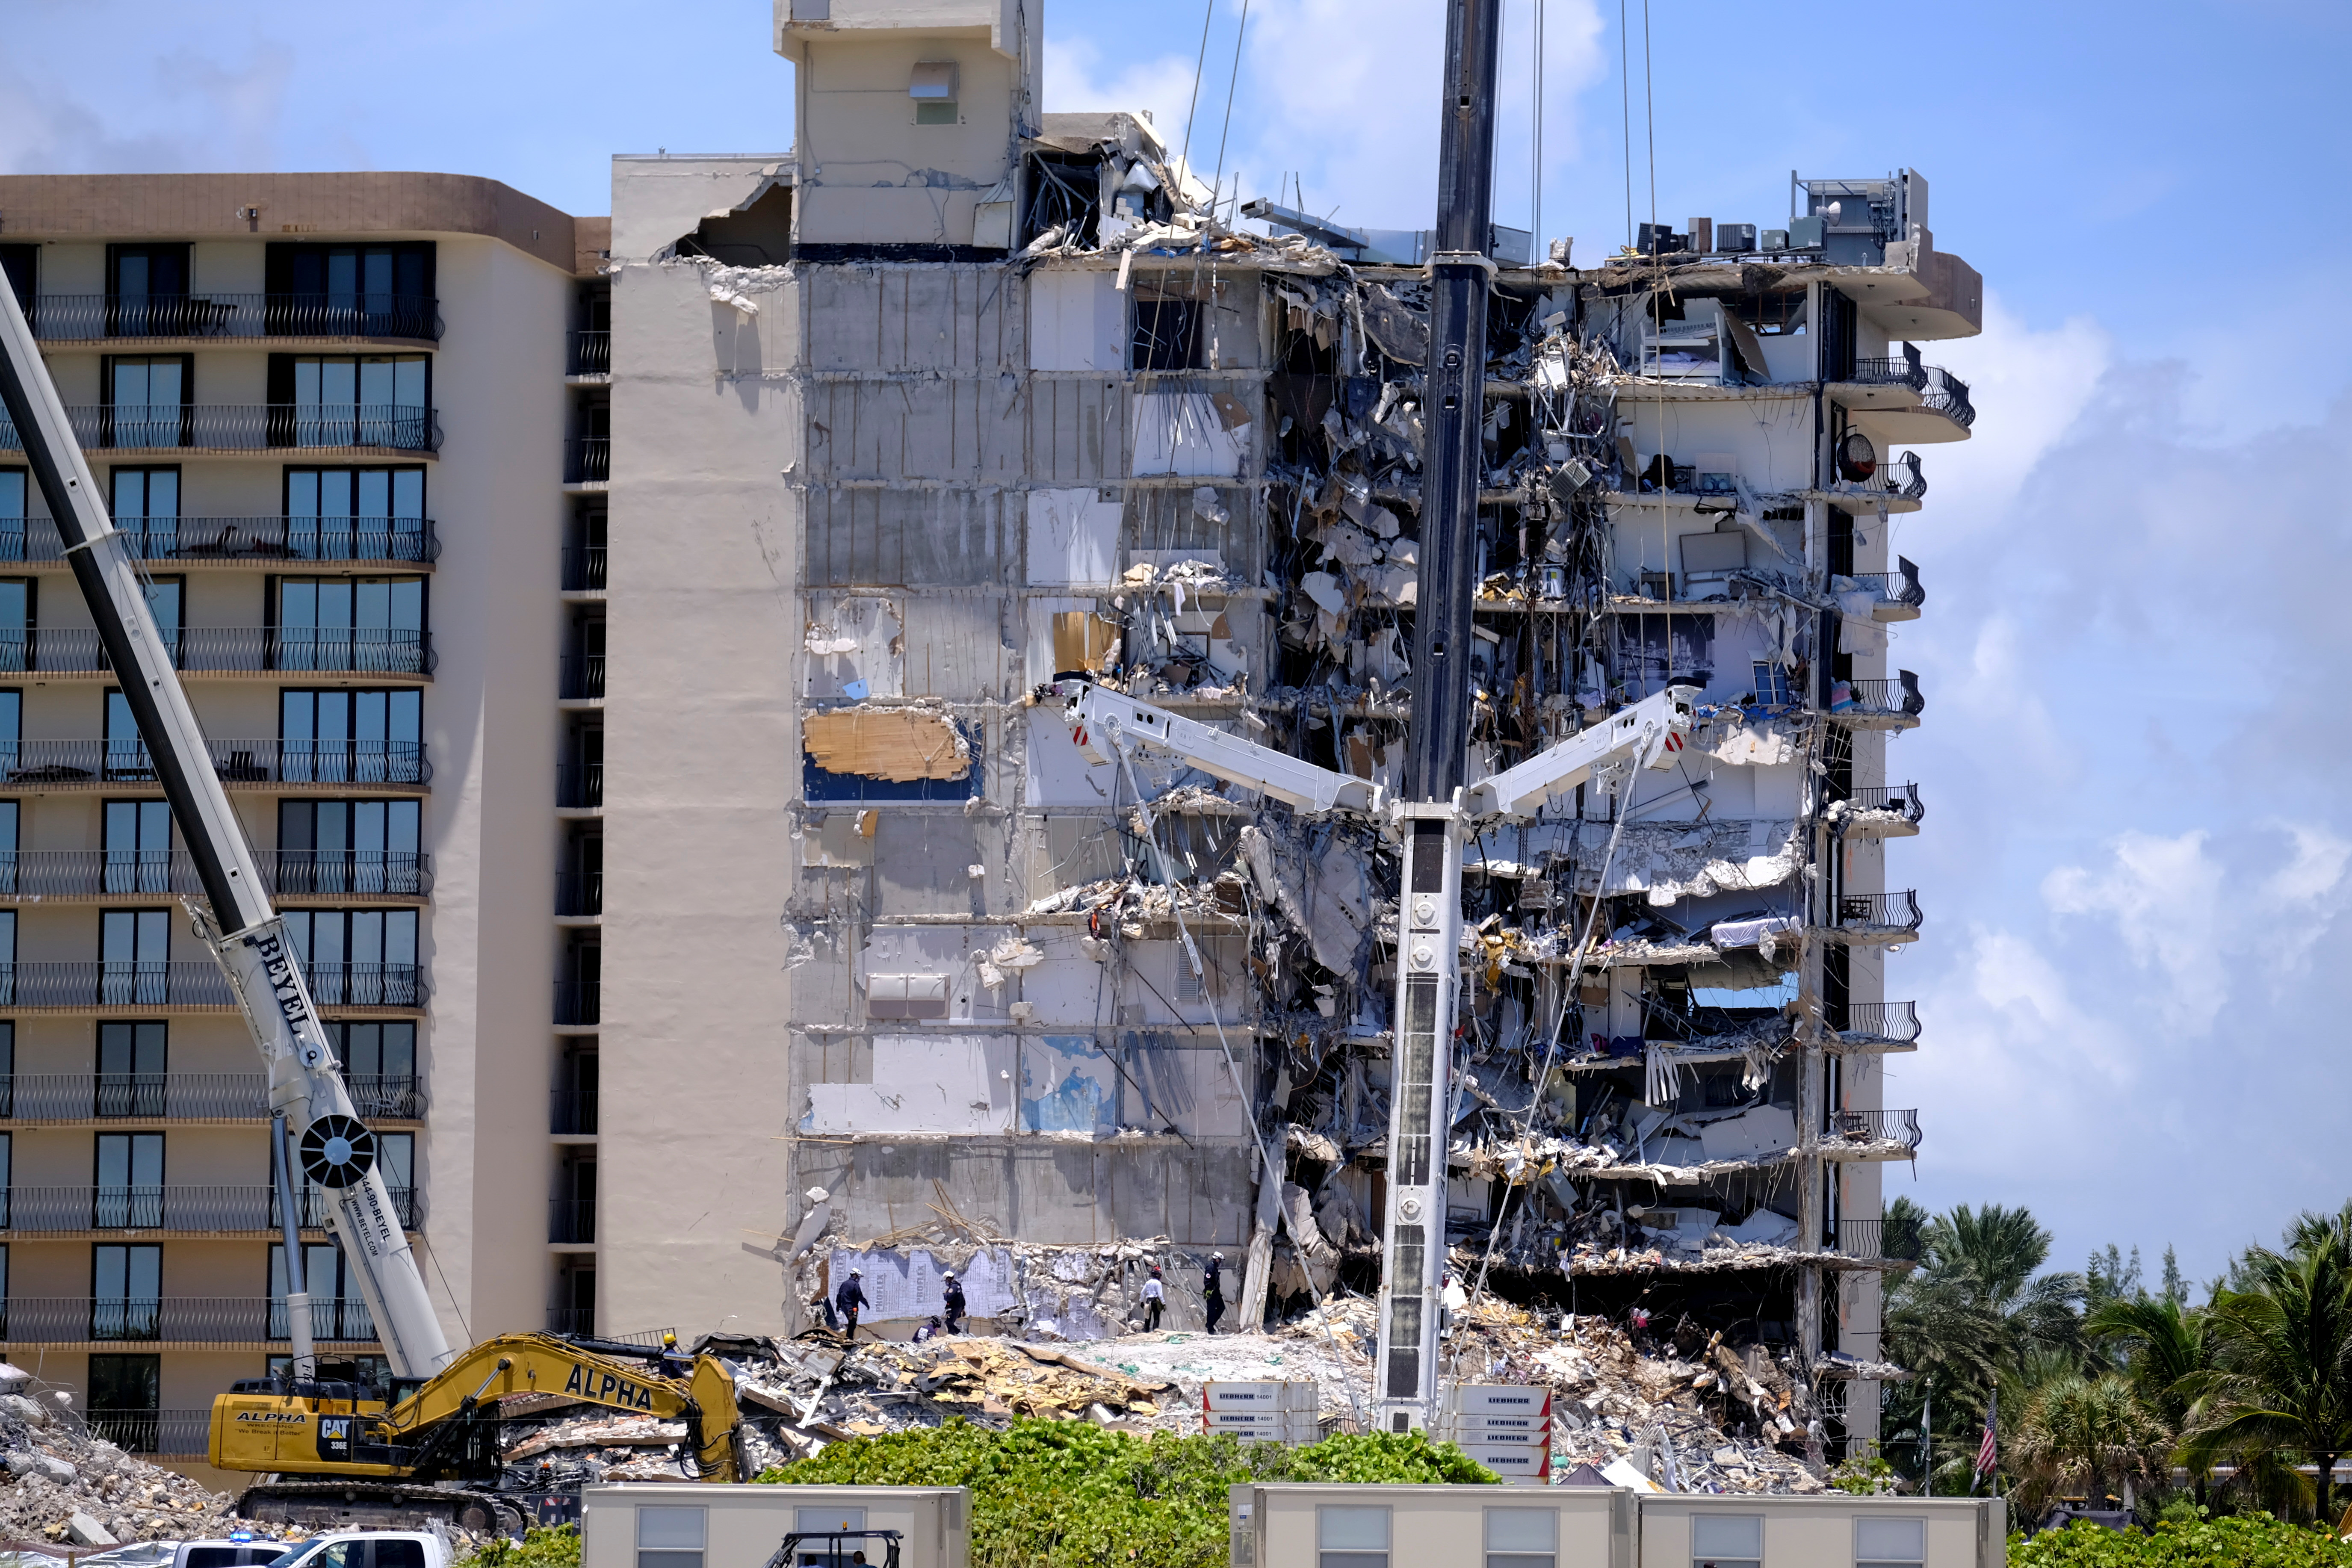 Search and rescue personnel continue searching for victims days after a residential building partially collapsed in Surfside near Miami Beach, Florida, U.S., June 27, 2021. REUTERS/Maria Alejandra Cardona